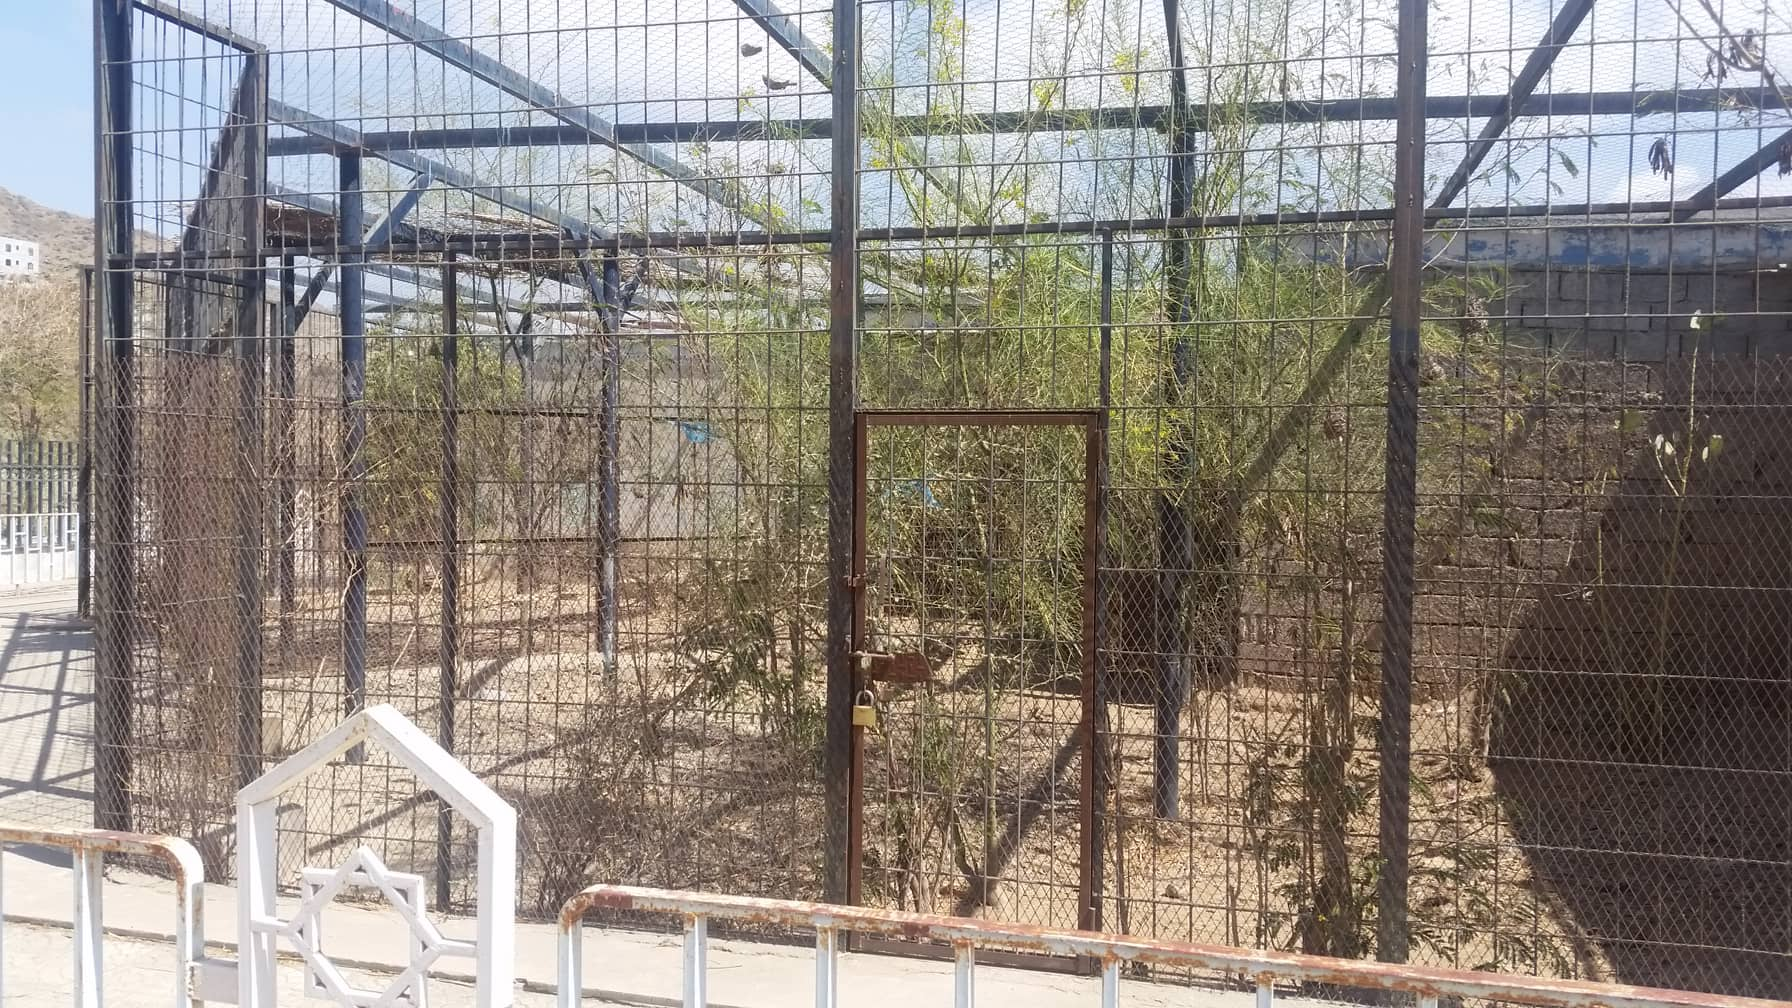 taiz 9 FEB 2019 OWAP-AR copywrite zoo yemen outside enclosure.jpg